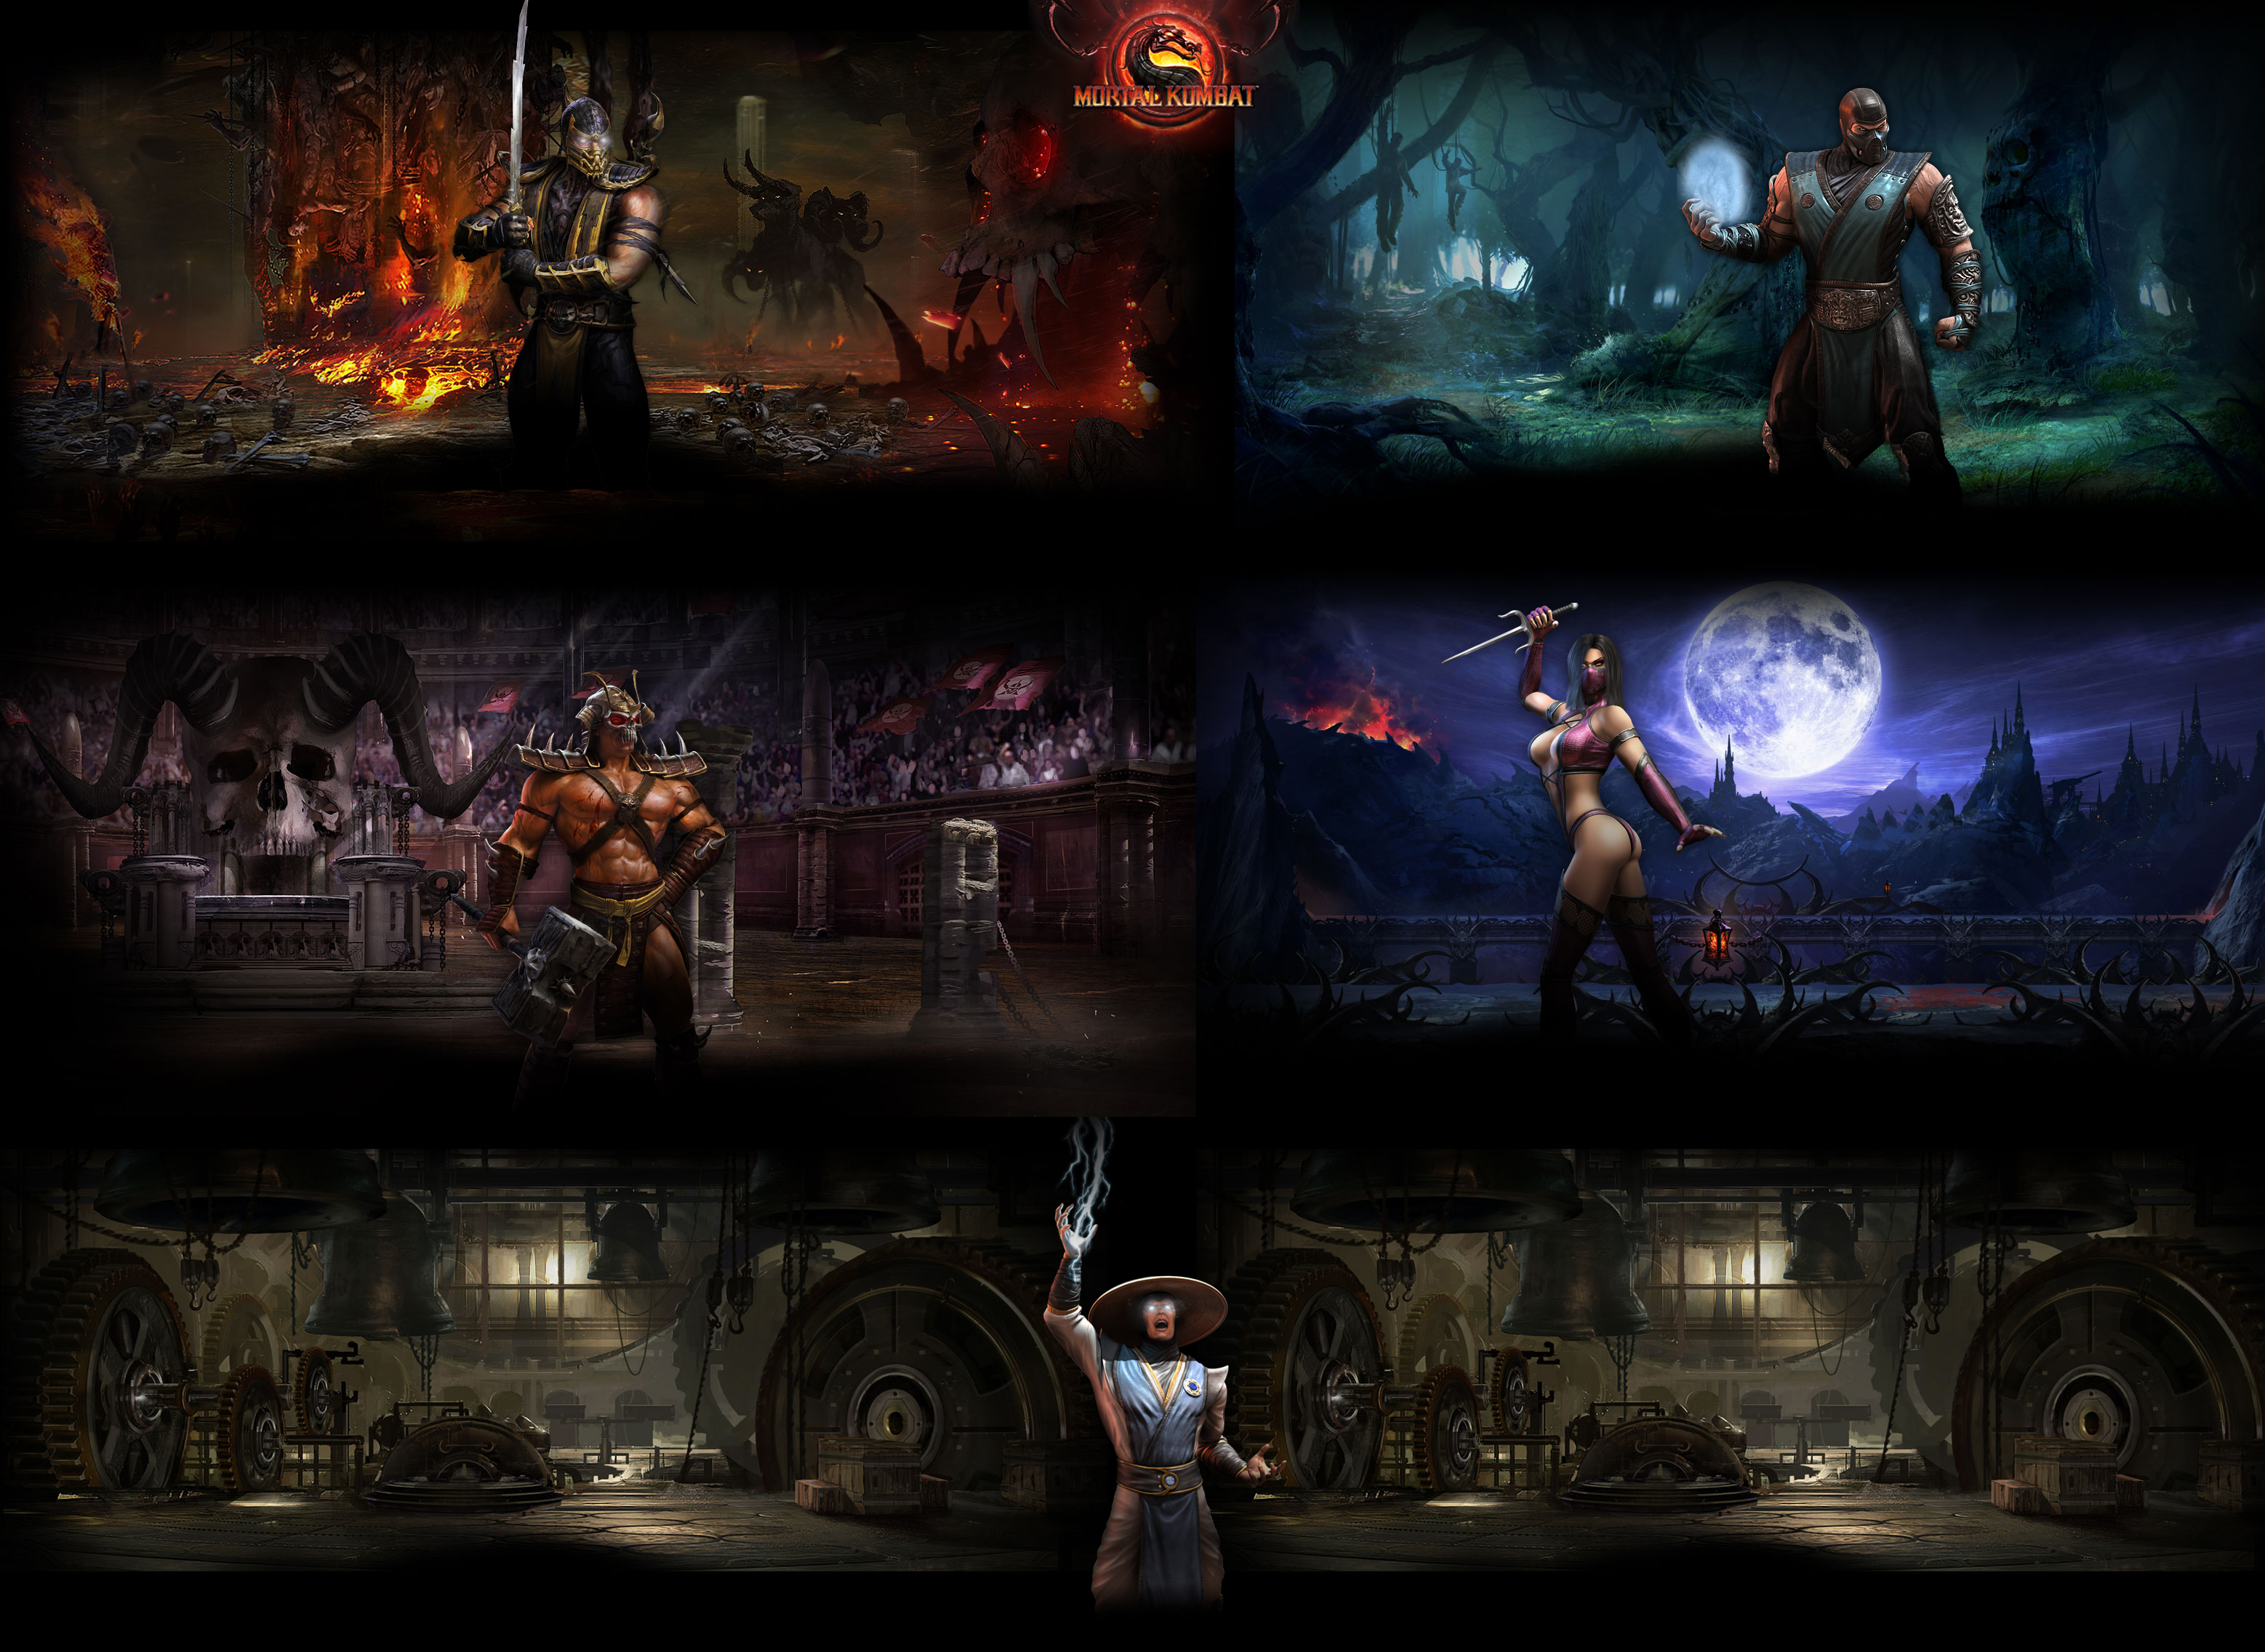 Mortal Kombat 9 Wallpaper 1 By Father12345 On Deviantart